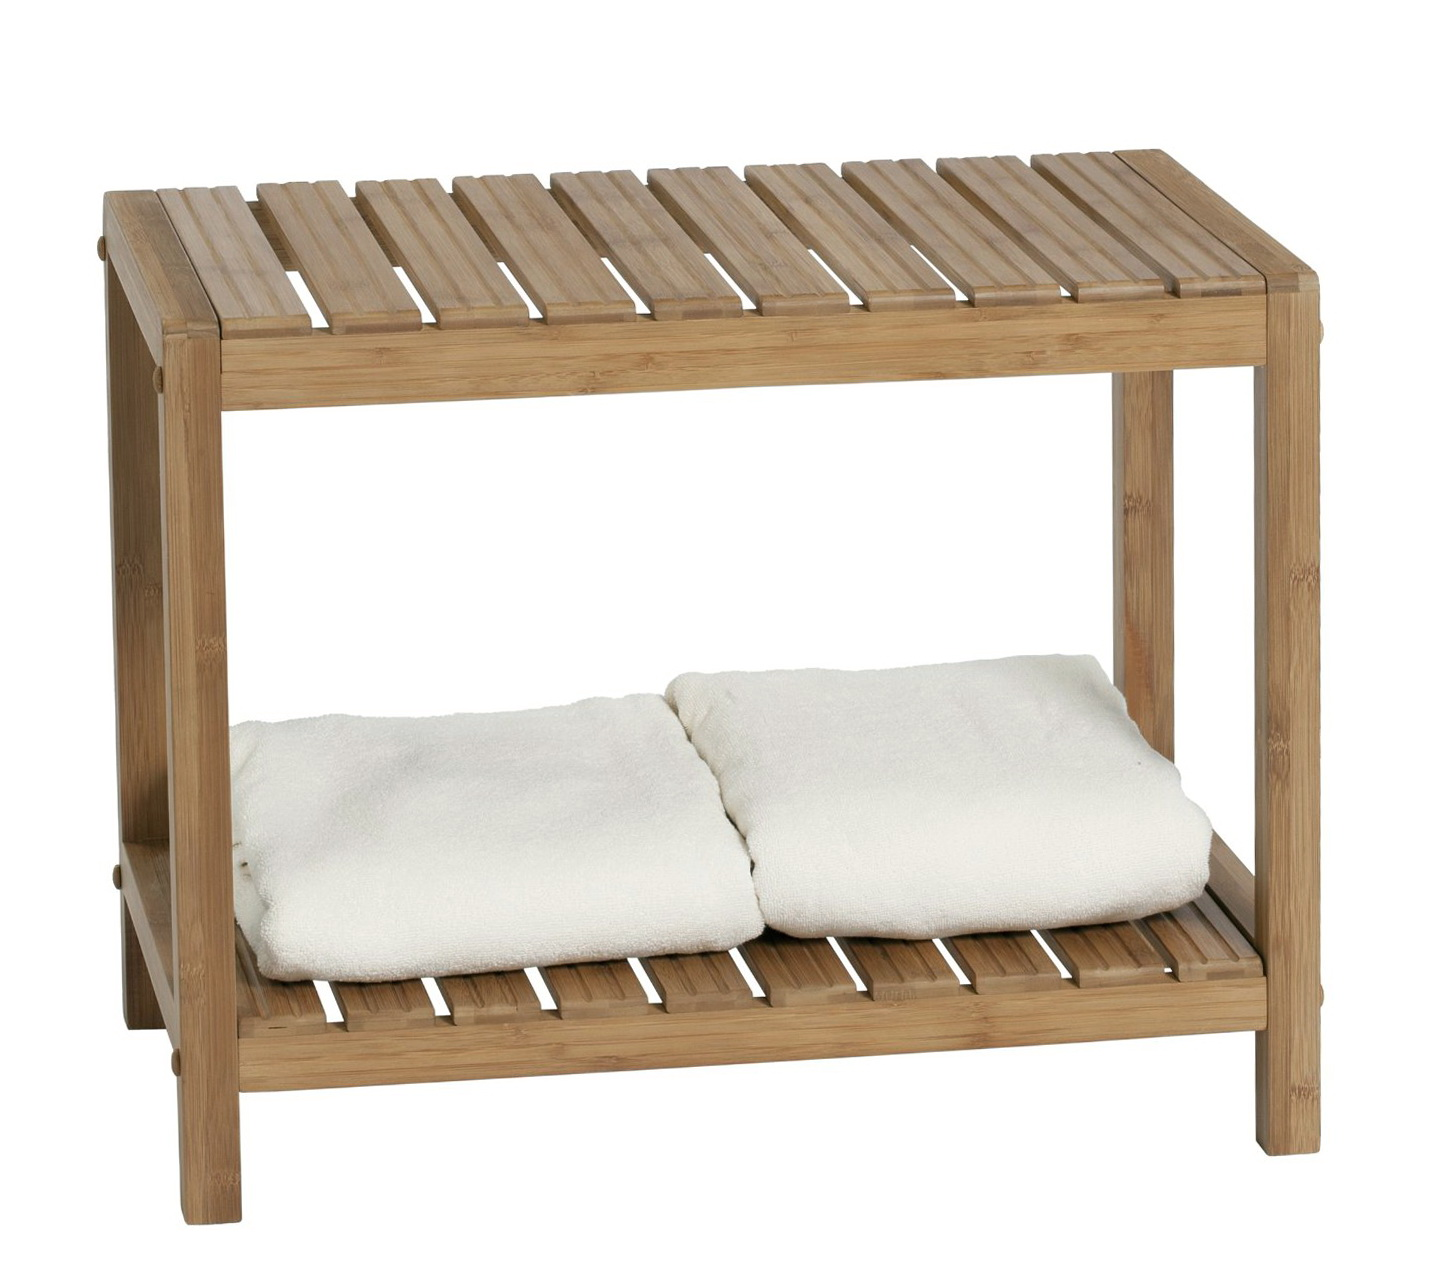 Teak Shower Bench Canada Home Design Ideas